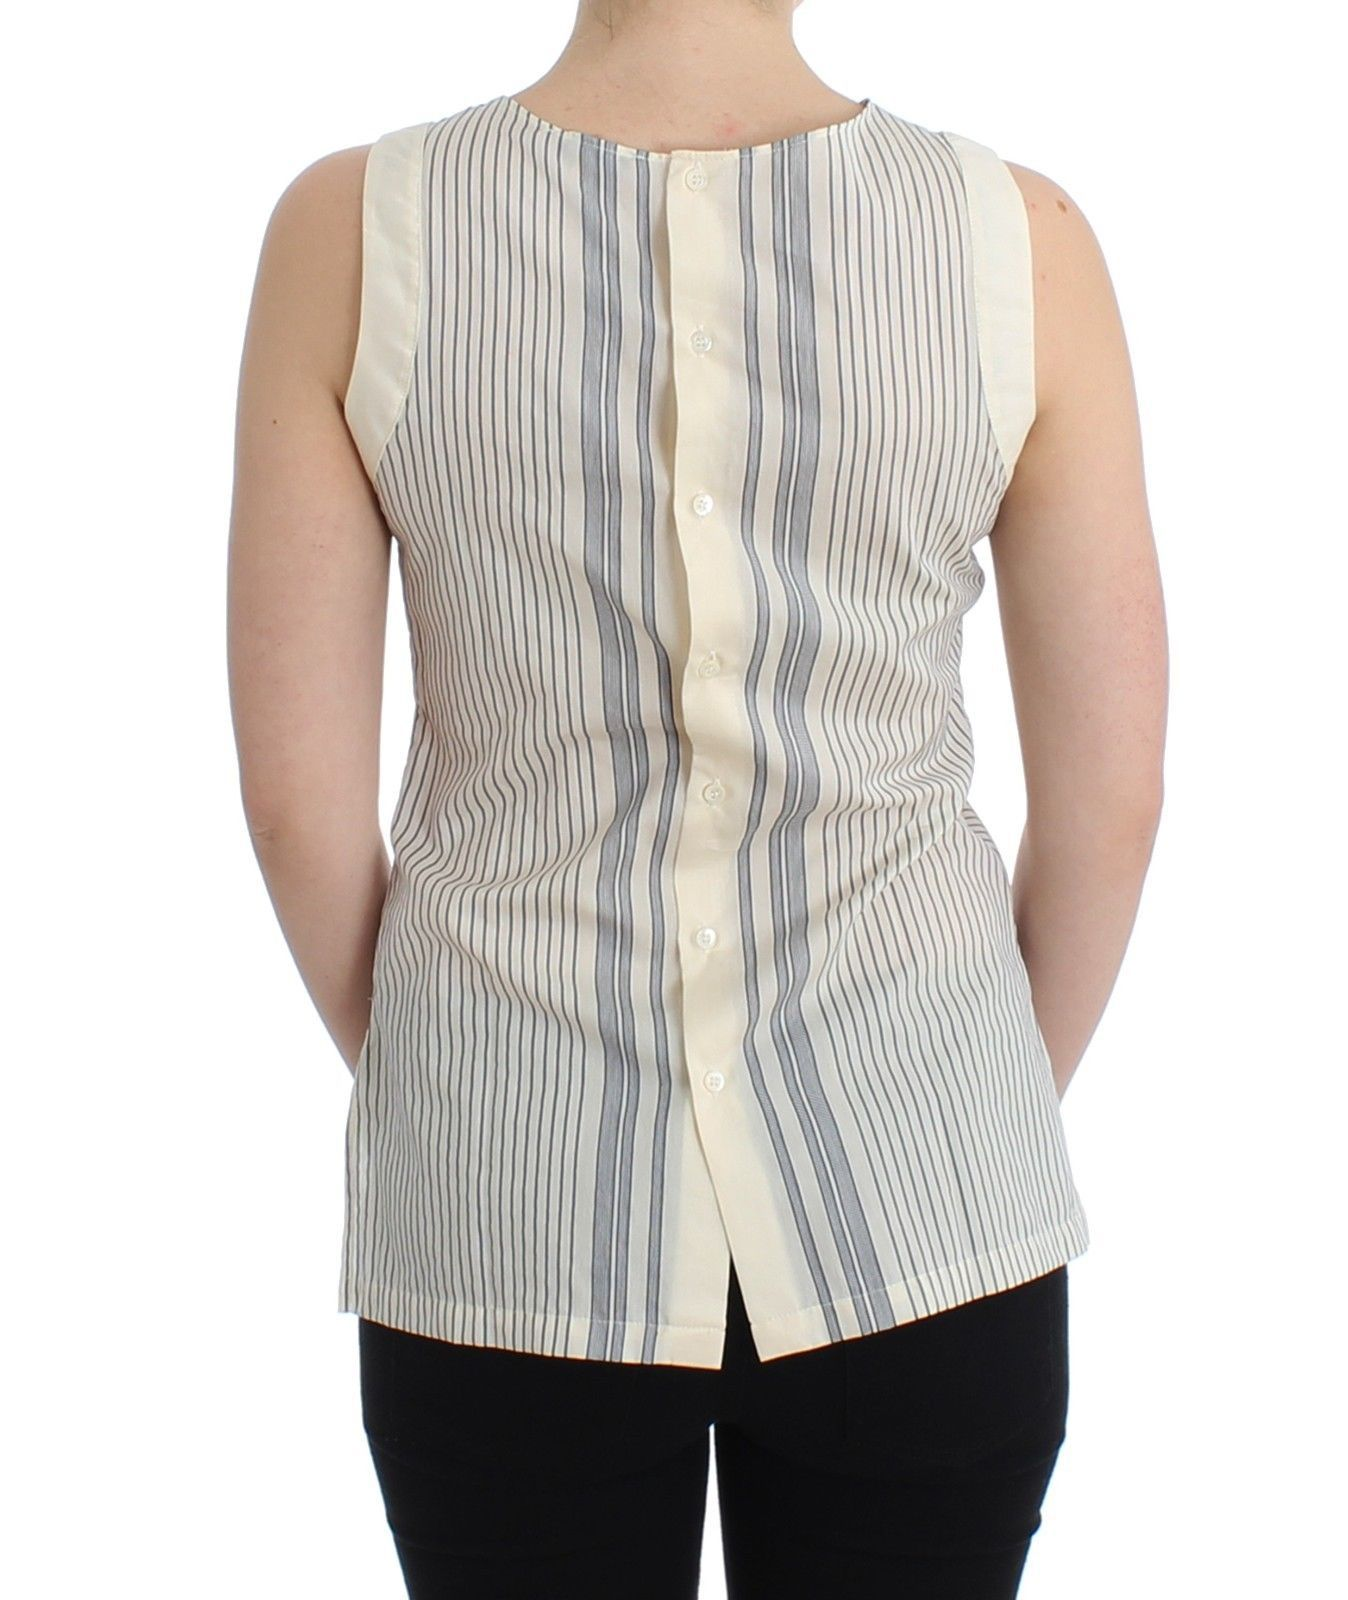 Ermanno Scervino Beachwear Striped Top Blouse Shirt Bow Tank